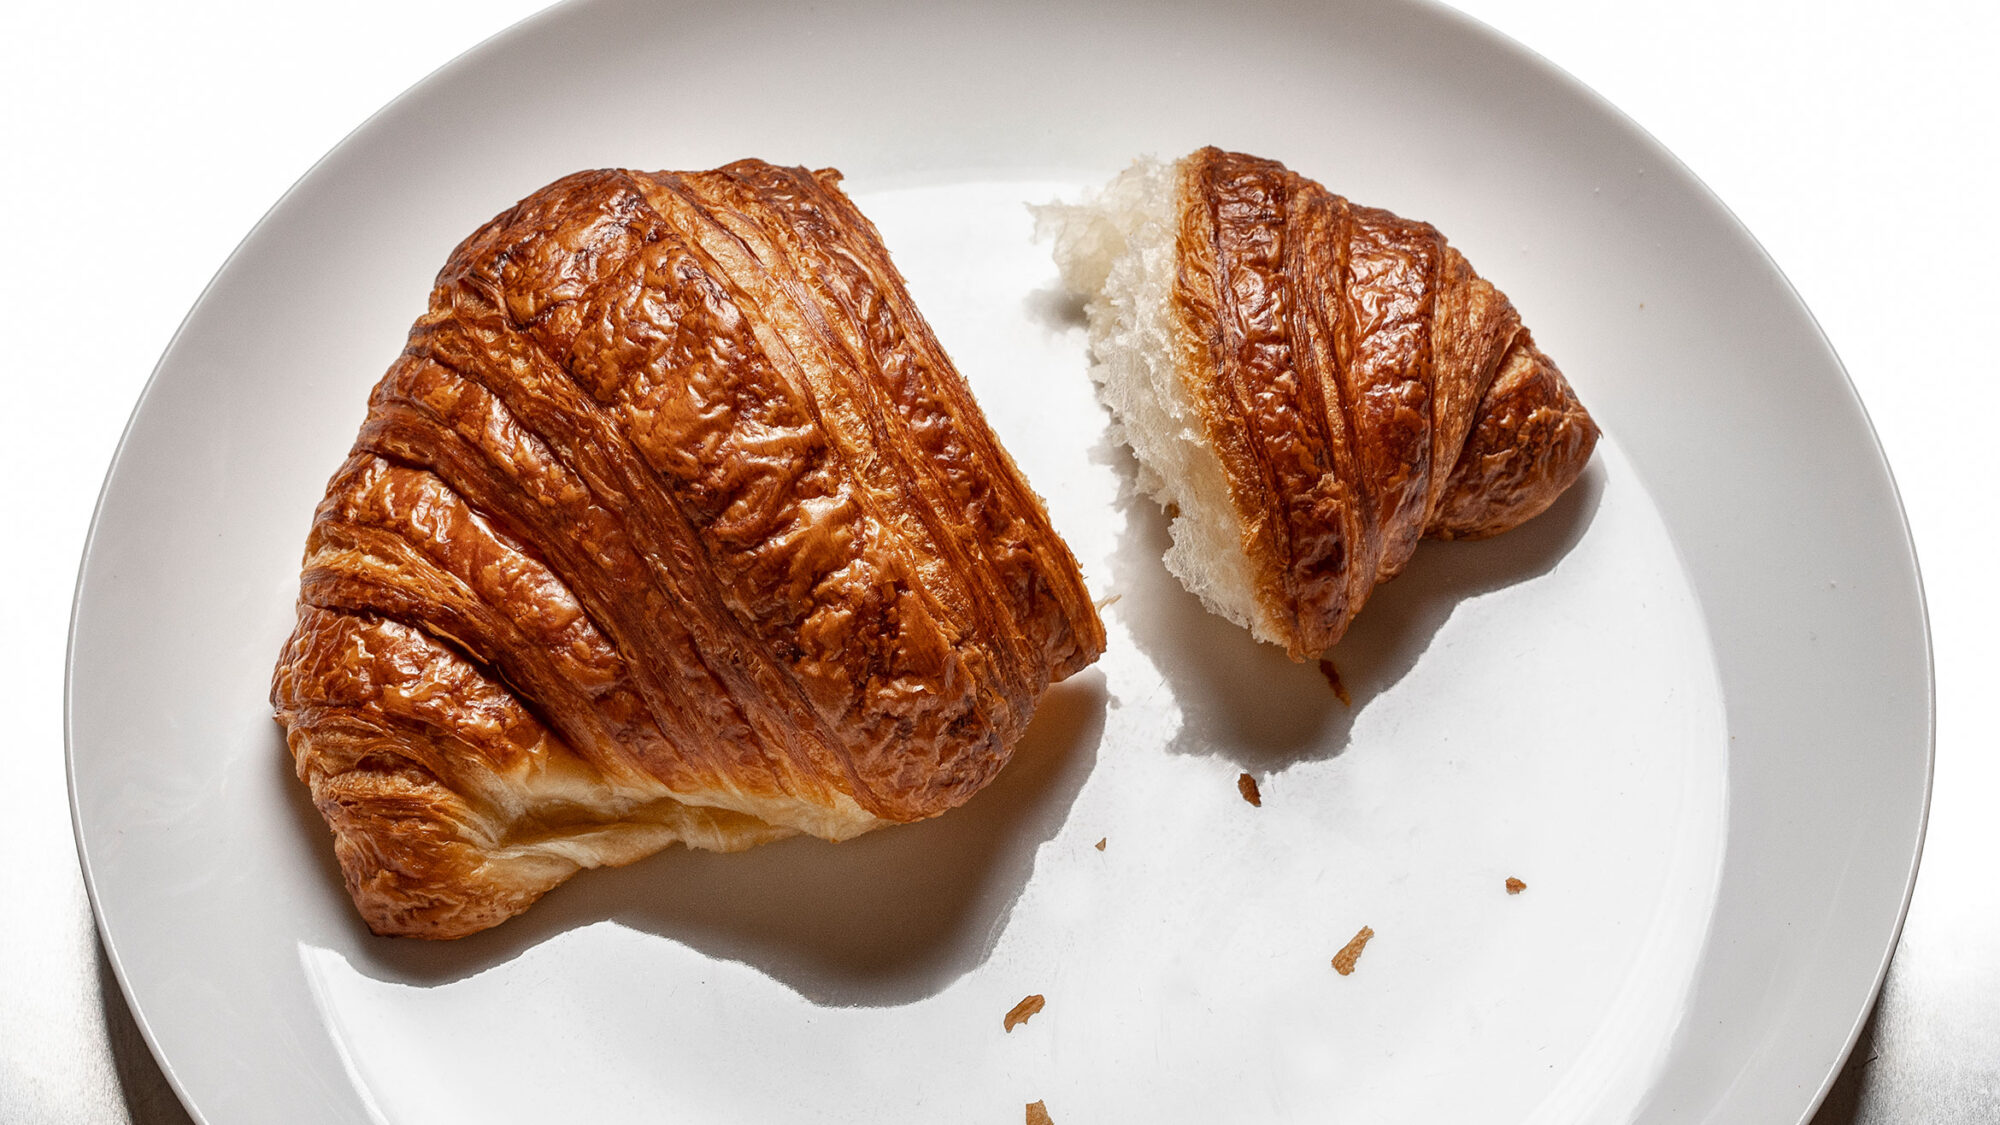 Article-Industrial-Croissant-History